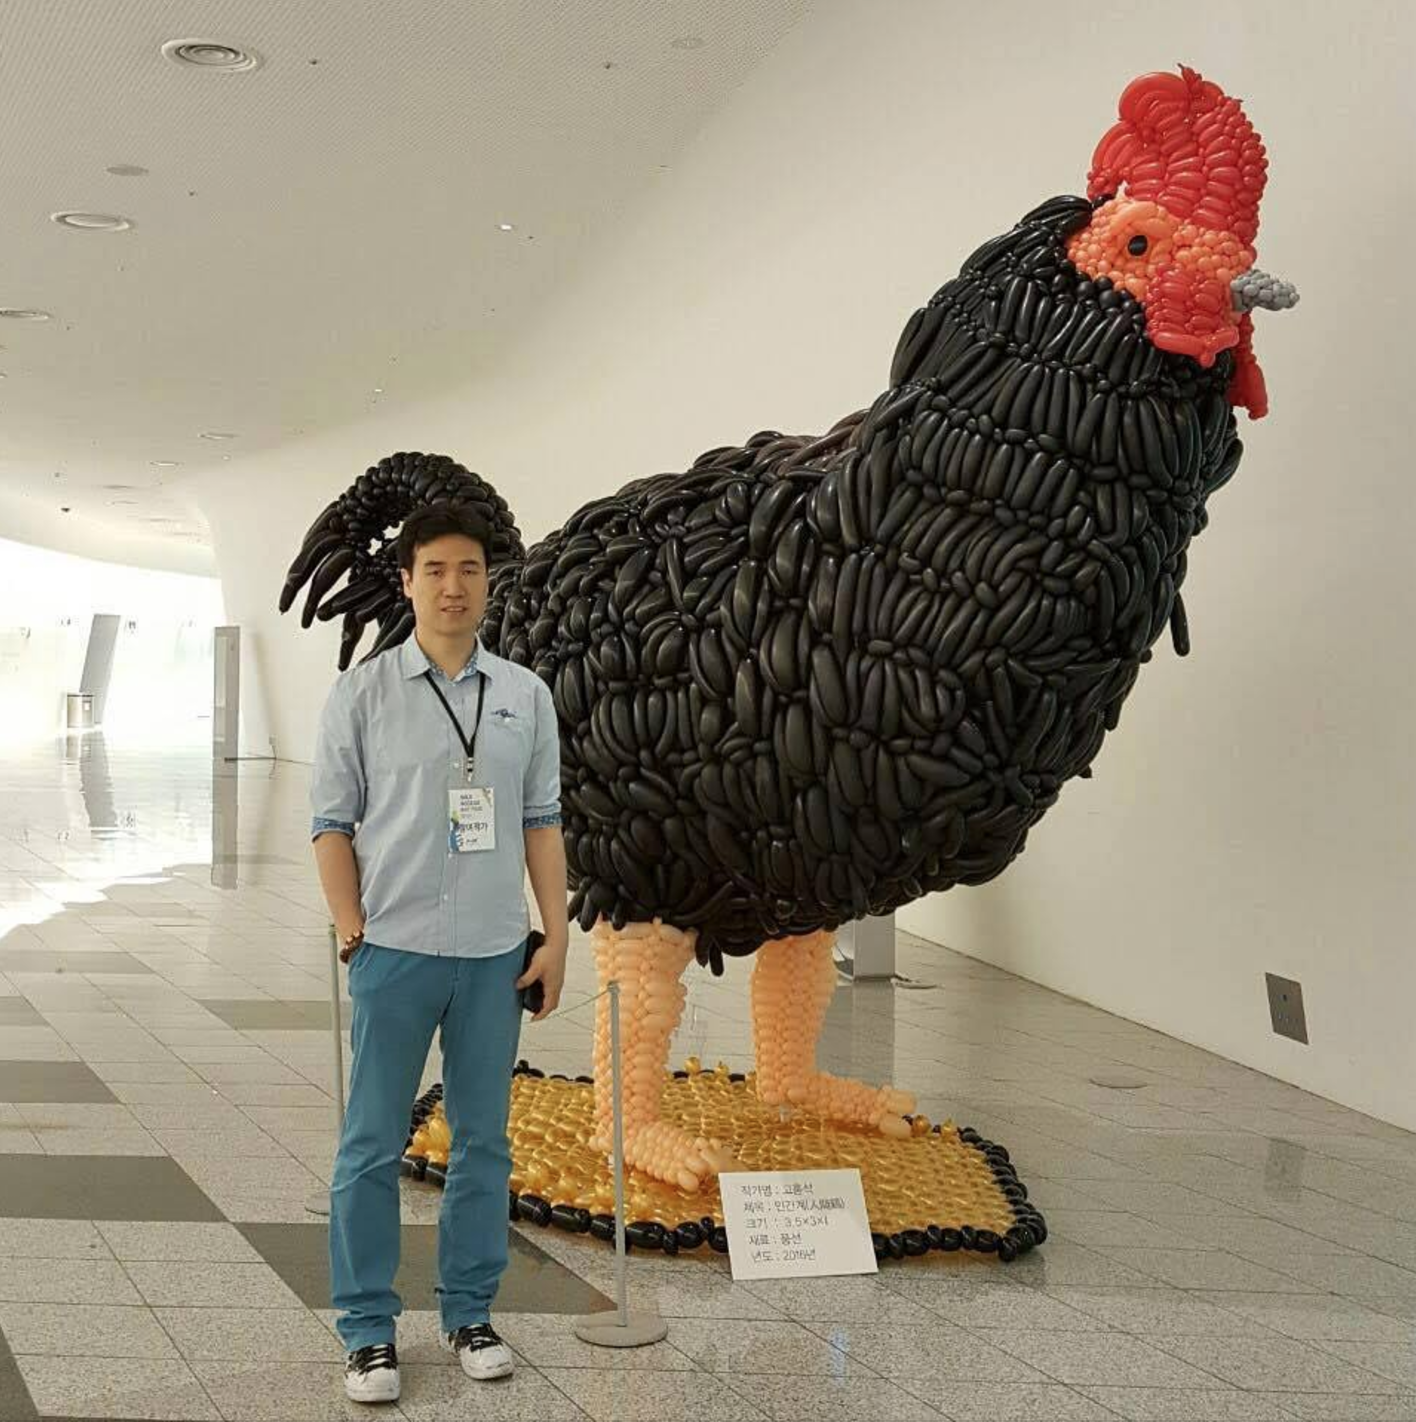 HongSeok Goh, blind artist, stands next to his sculpture made of balloons